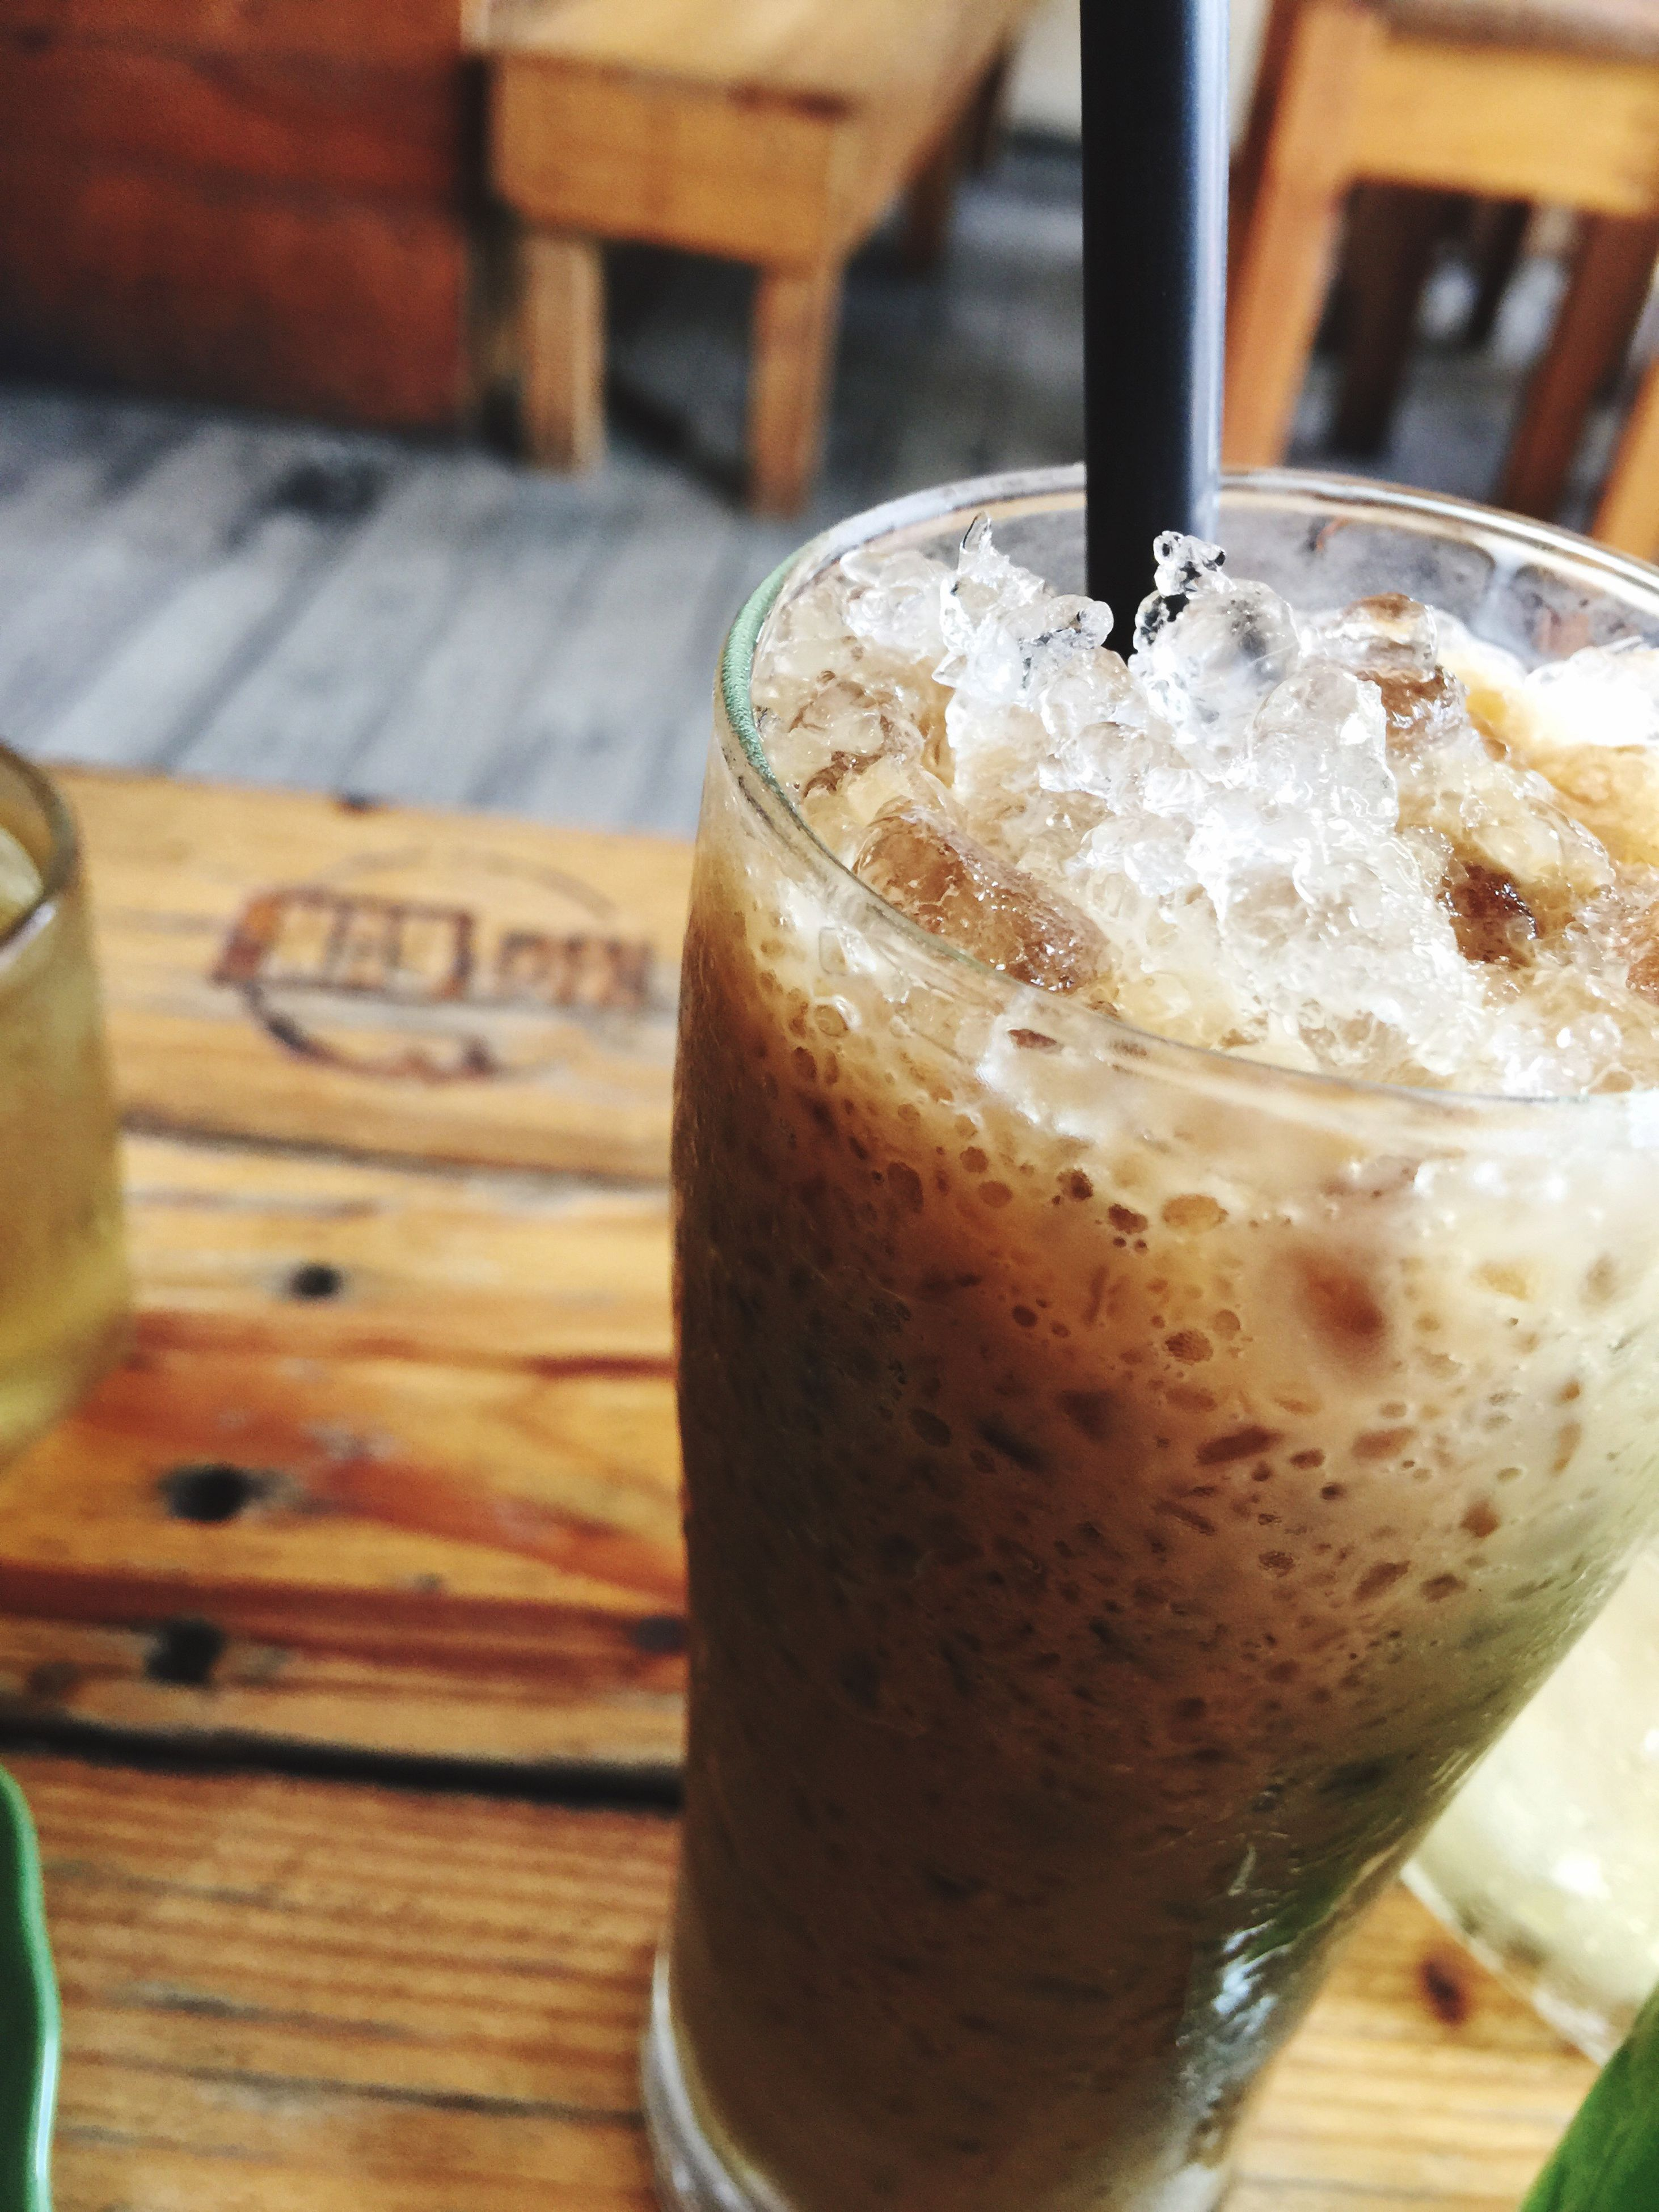 food and drink, drink, refreshment, indoors, freshness, table, drinking glass, close-up, still life, alcohol, frothy drink, focus on foreground, drinking straw, coffee - drink, beer glass, glass - material, wood - material, healthy eating, beverage, food